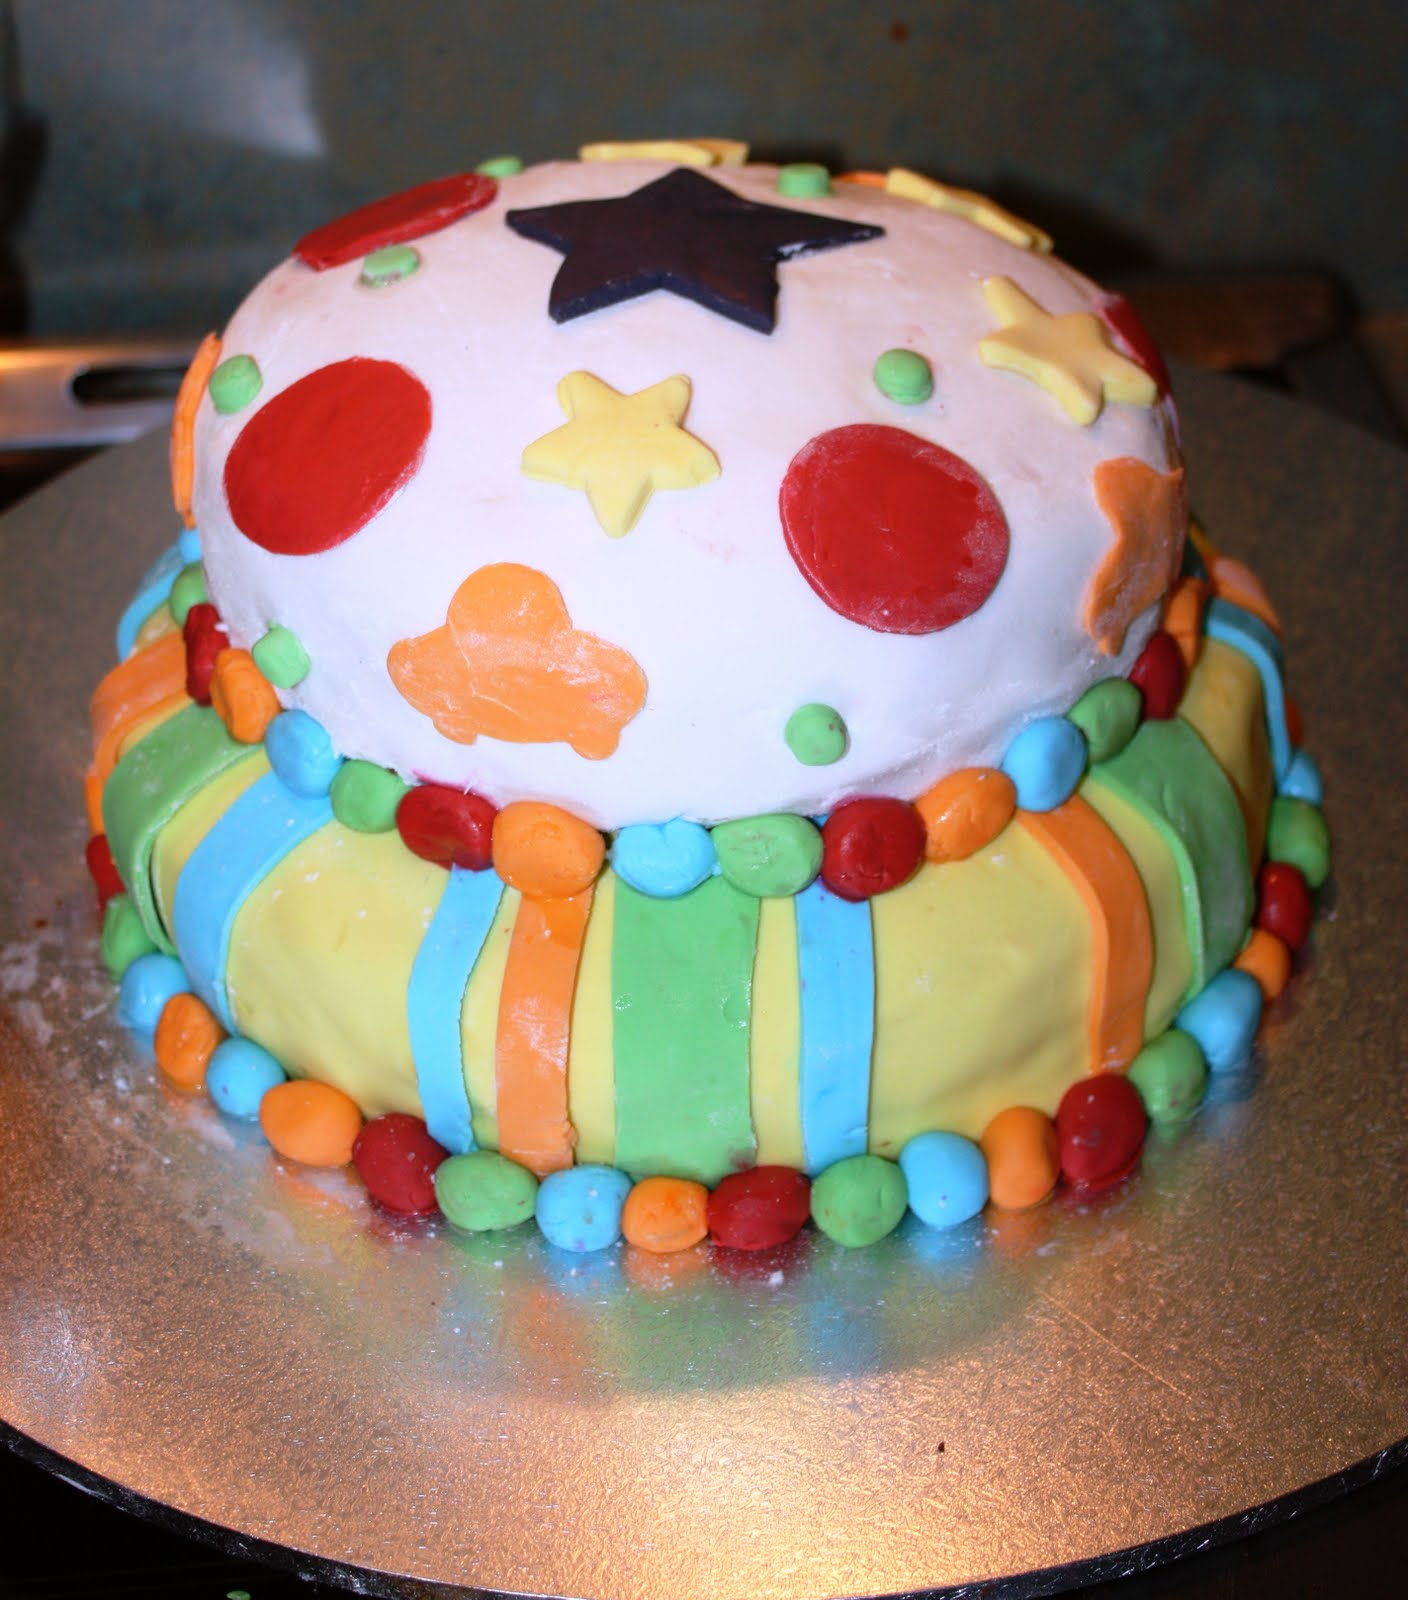 Kids Love Craft: Cake Decorating 2nd Birthday